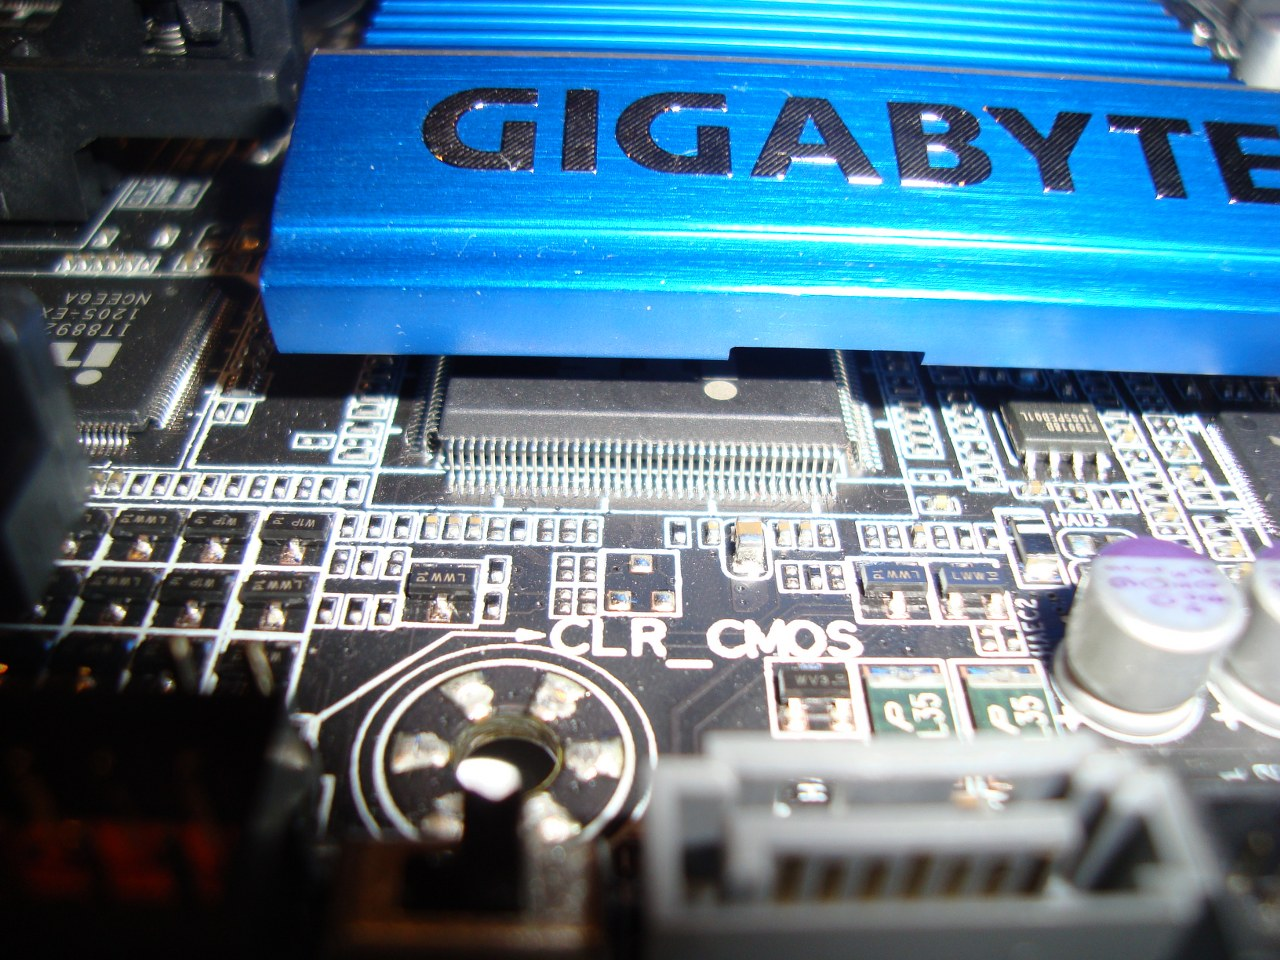 Gigabyte Z77X-UD5H-WB WIFI, Chipset ITE IT8728F